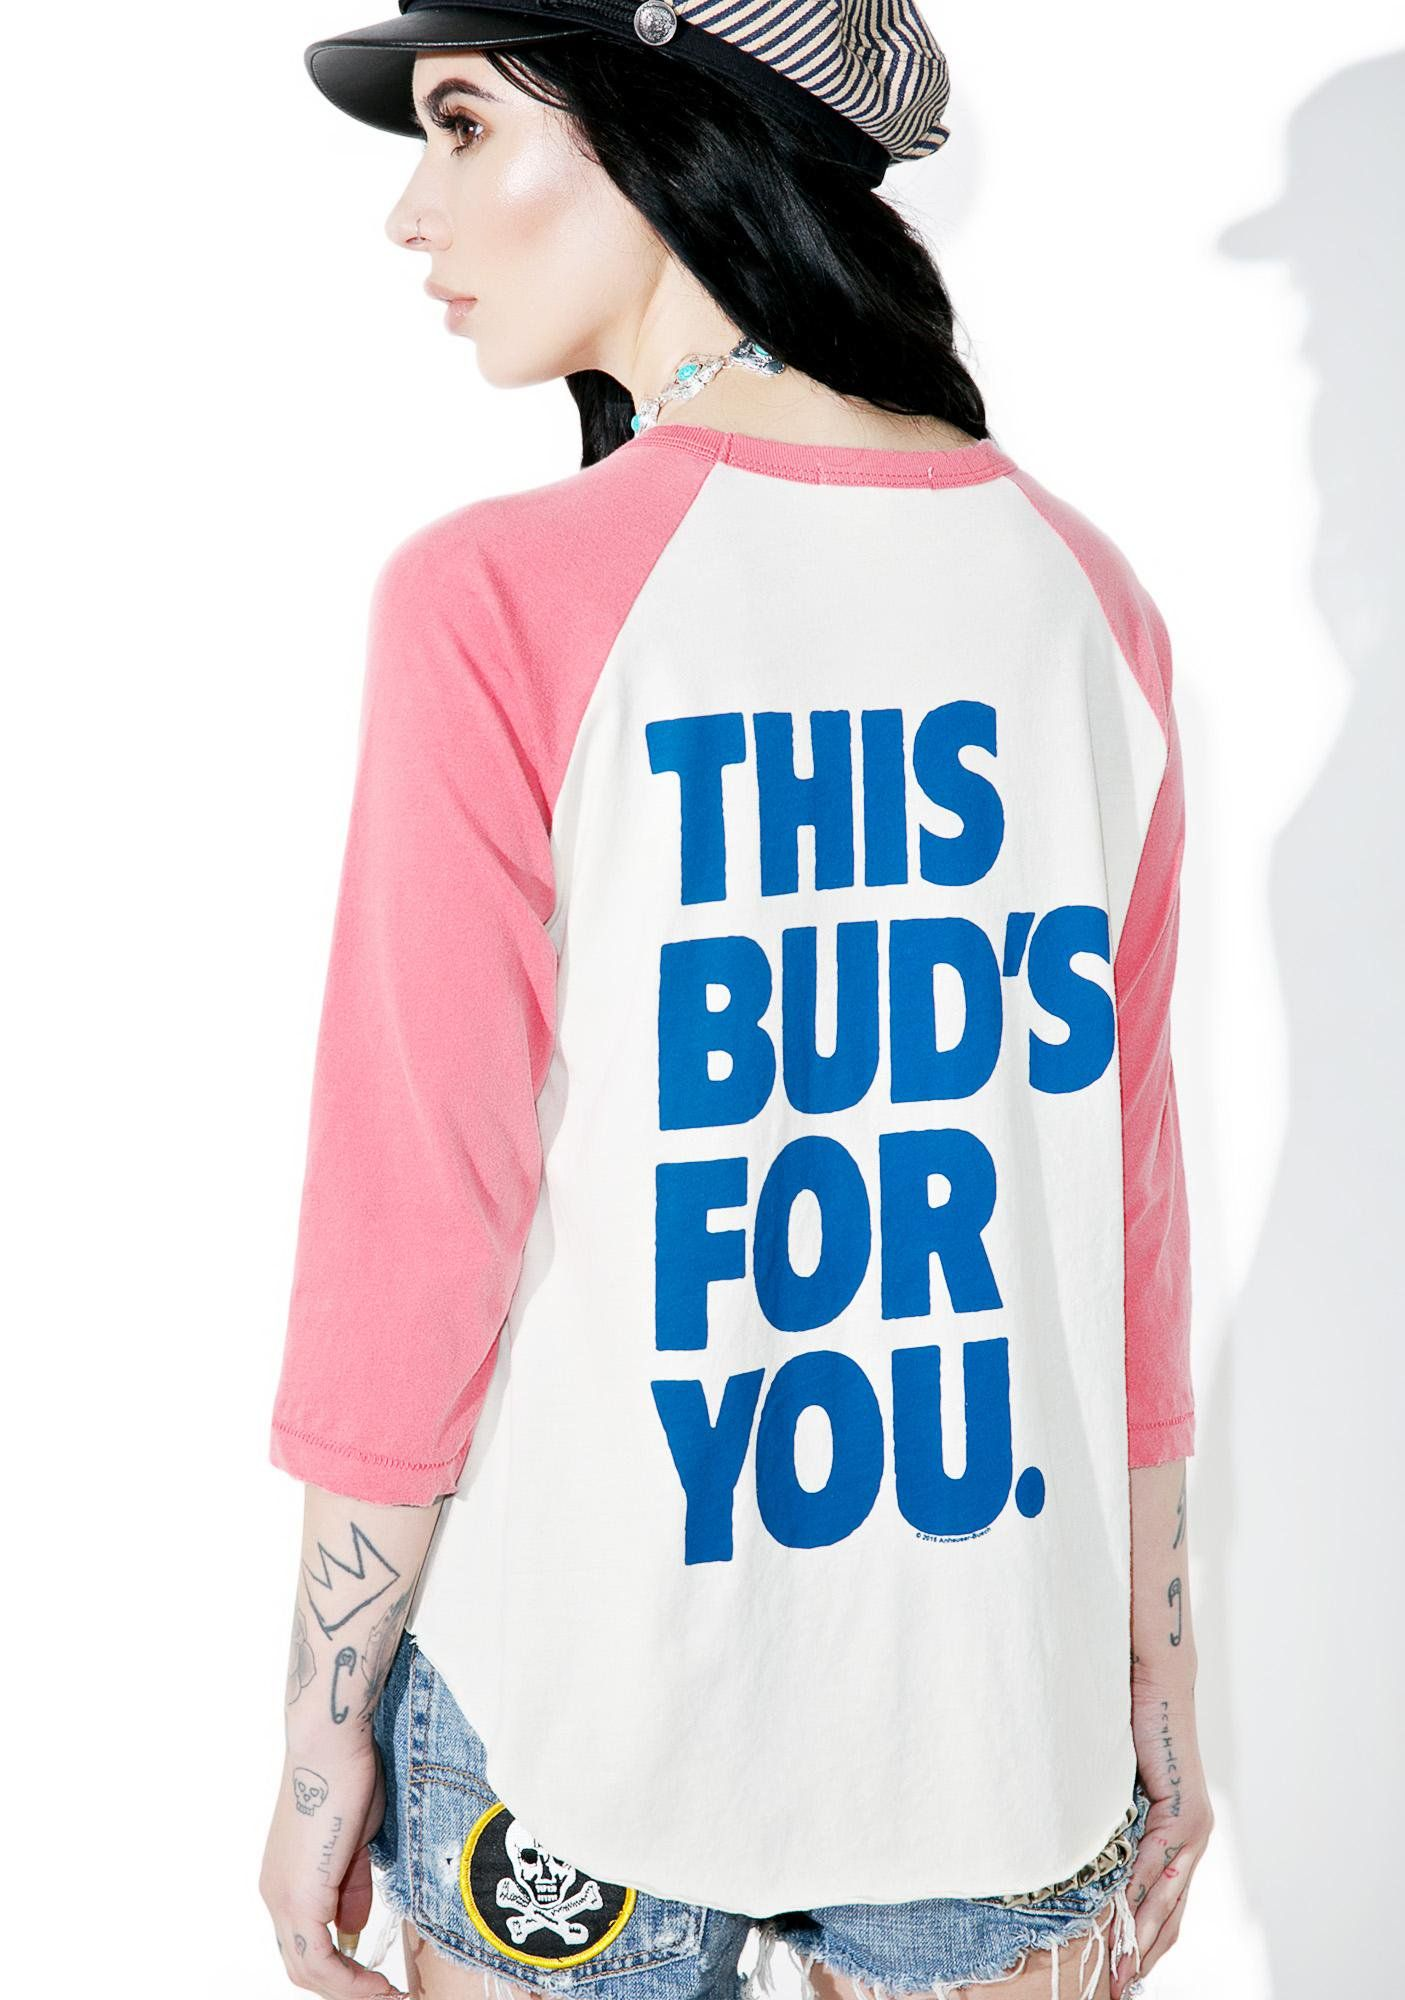 """Junk Food Clothing Budweiser Raglan Tee is yer favorite type of bud to pass around, bb. This raglan long sleeve features a relaxed fit, contrasting red quarter sleeves, a raw hem, logo design on the front, and large text that reads """"this buds for you"""" on the back."""